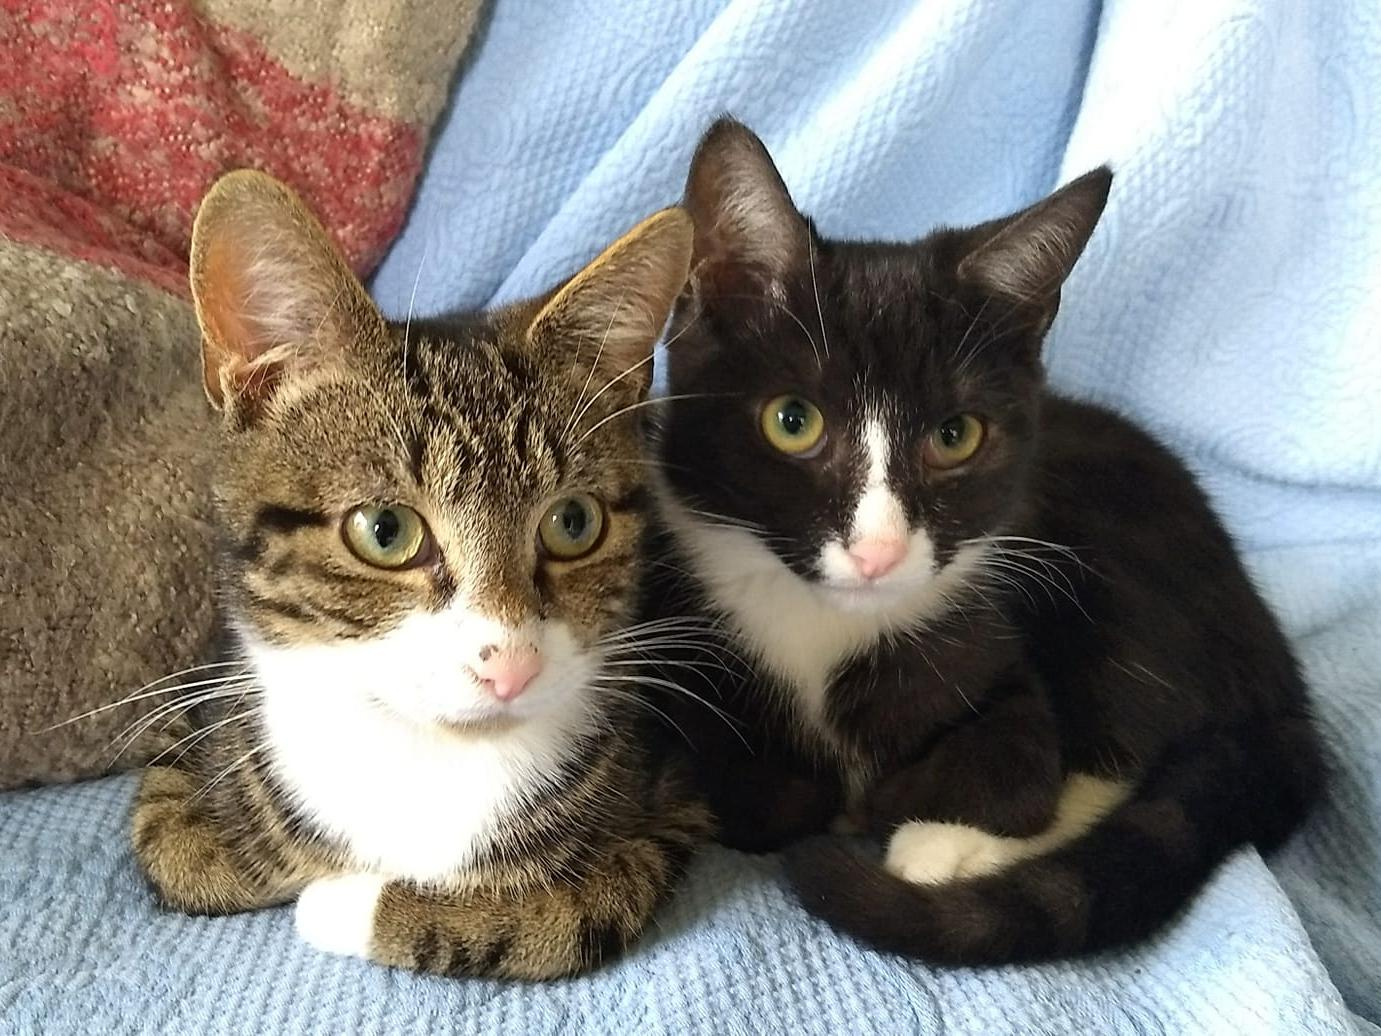 Leeds Cat Rescue 'desperate' for donations to keep up with demand